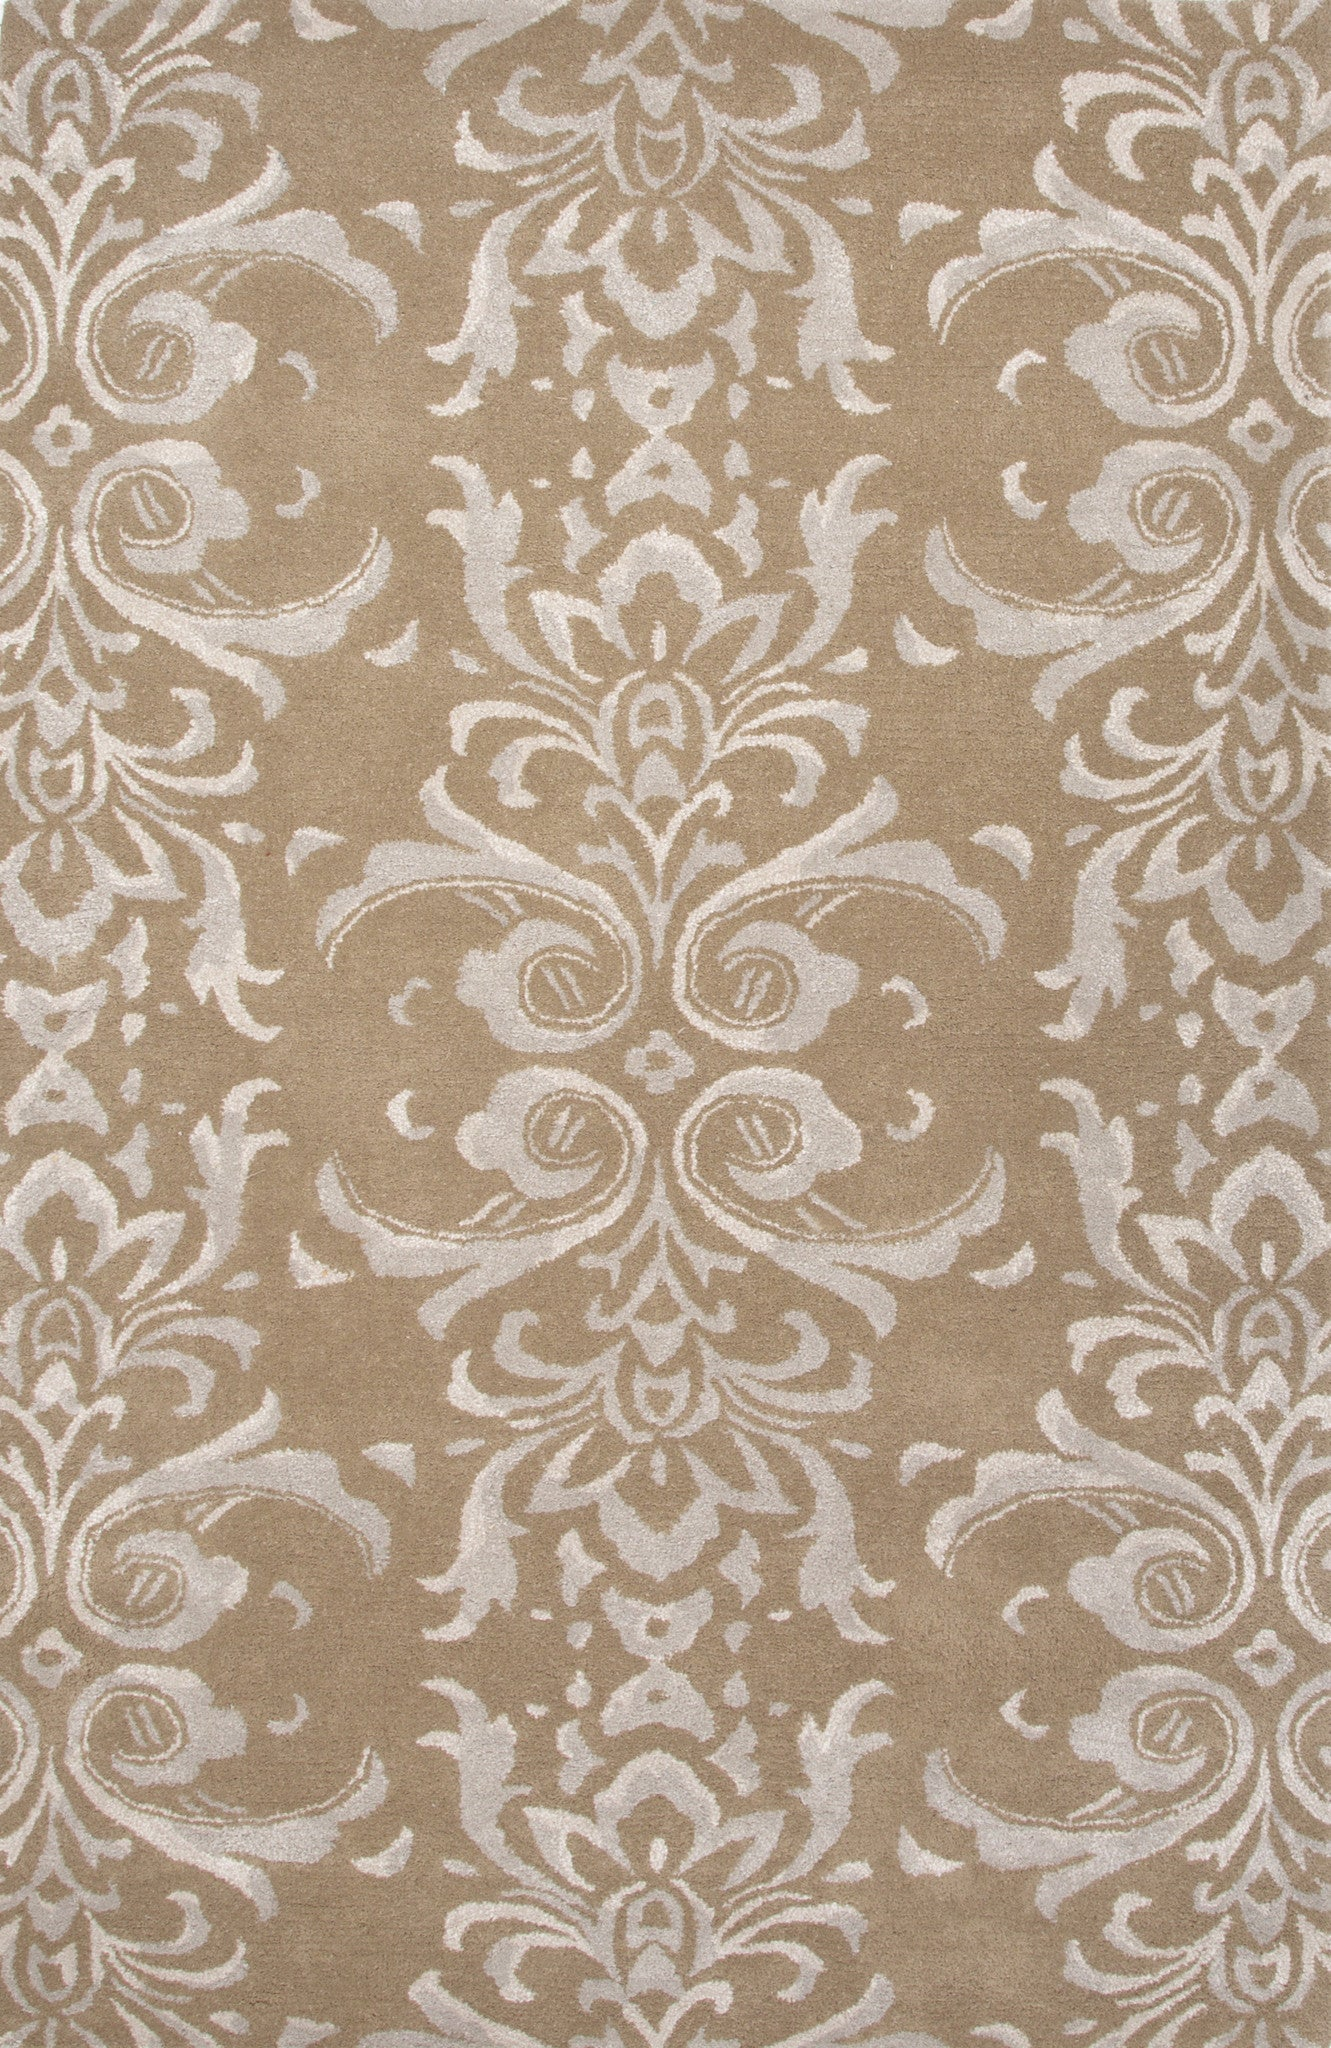 Jaipur Rugs Transitional Floral Pattern Tan Gray Wool And